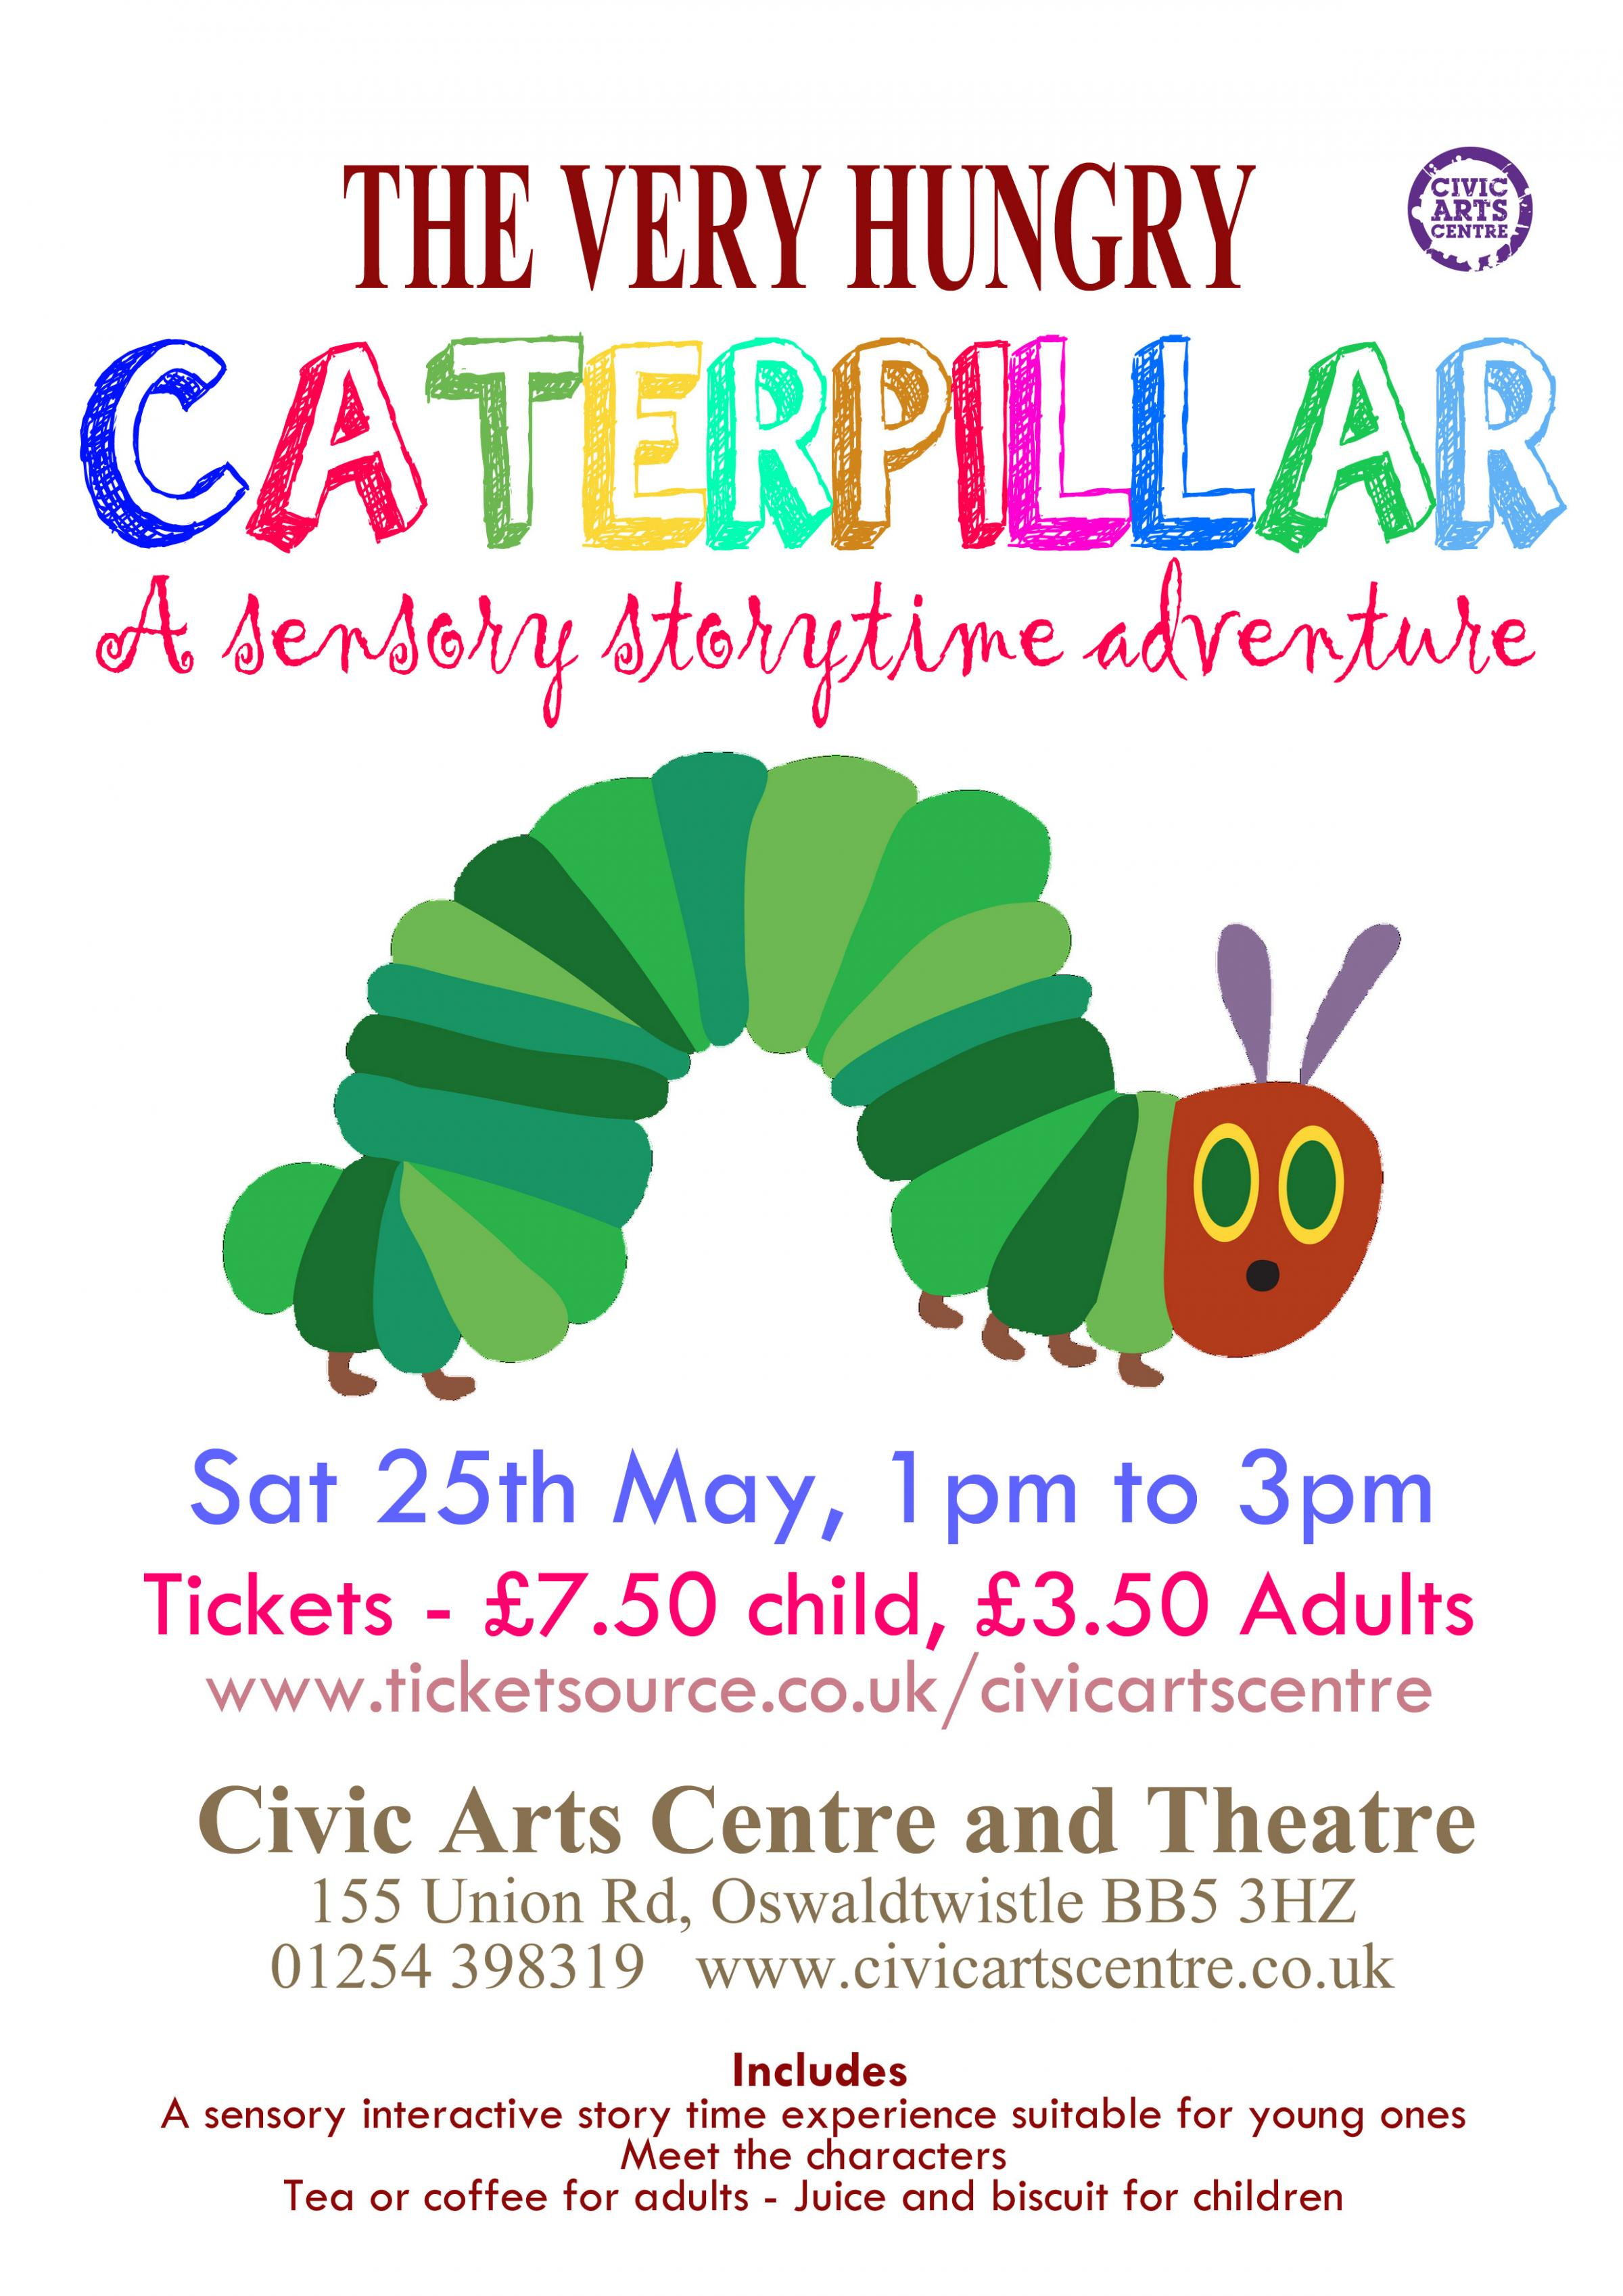 The Very Hungry Caterpillar - Sensory Storytime Adventure